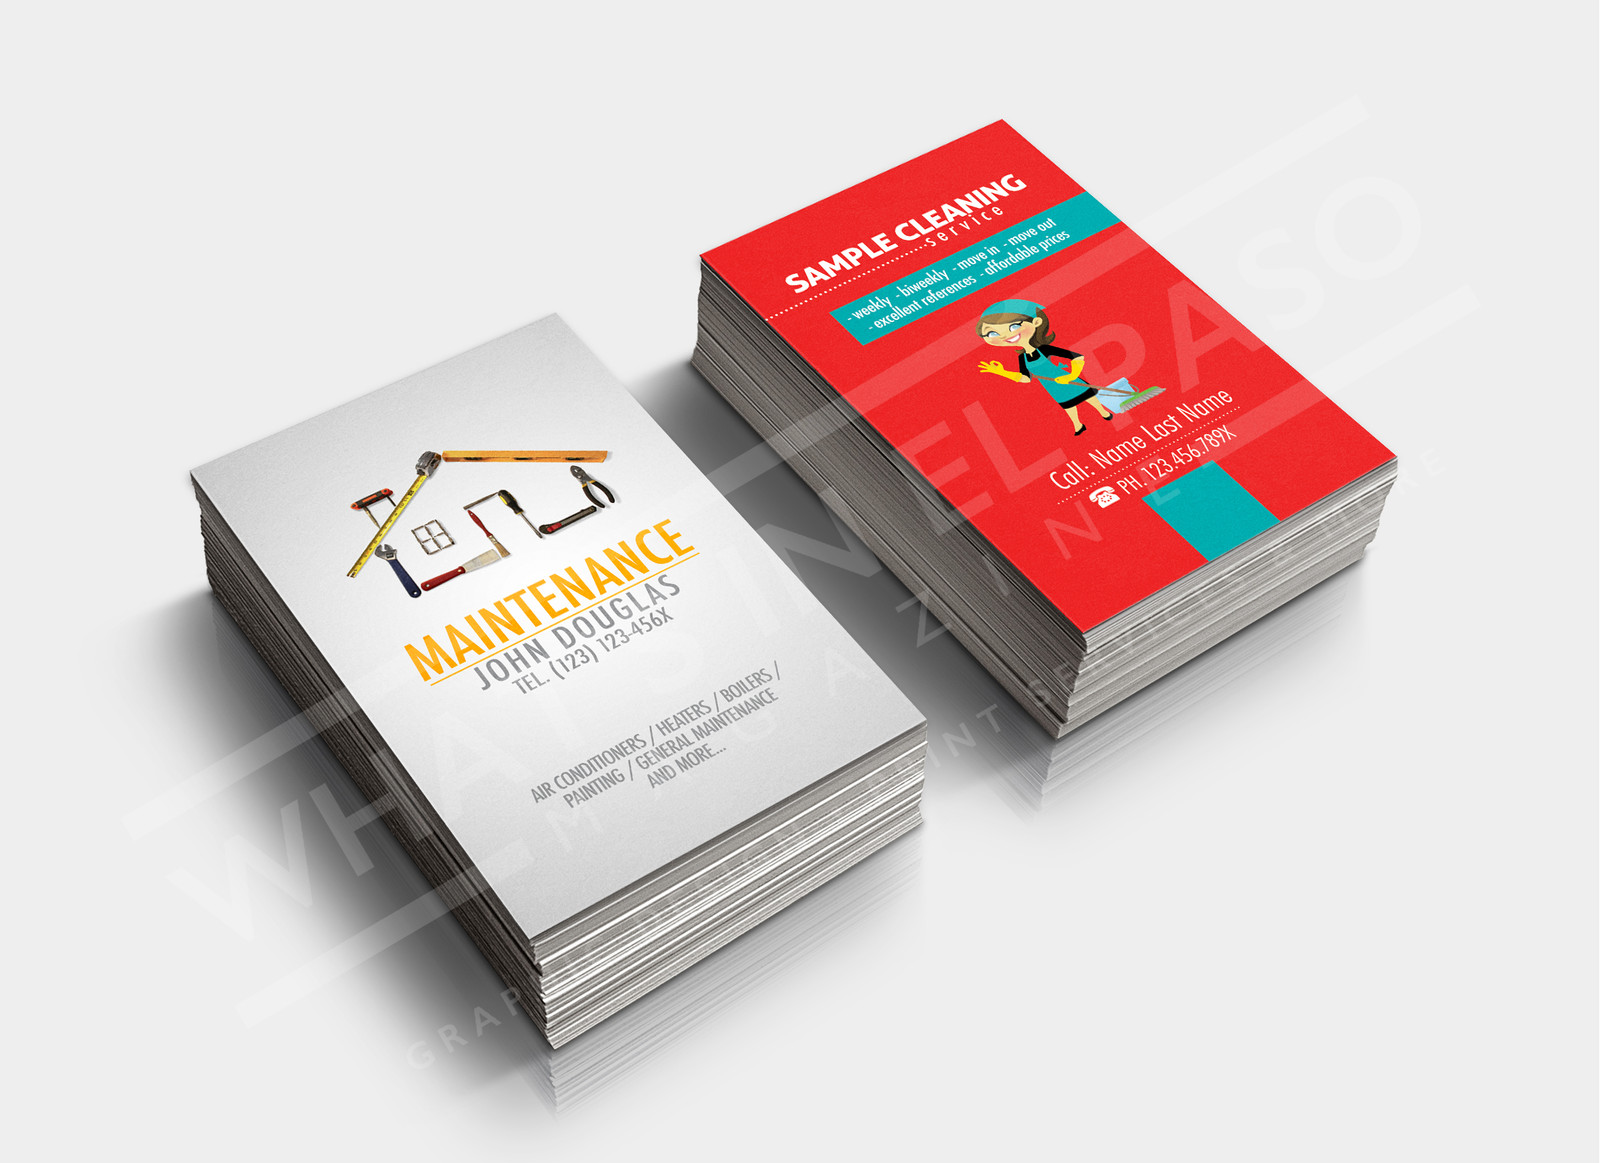 Business card printing el paso gallery card design and card template fine business cards el paso tx pictures inspiration business card business cards printing el paso tx reheart Image collections